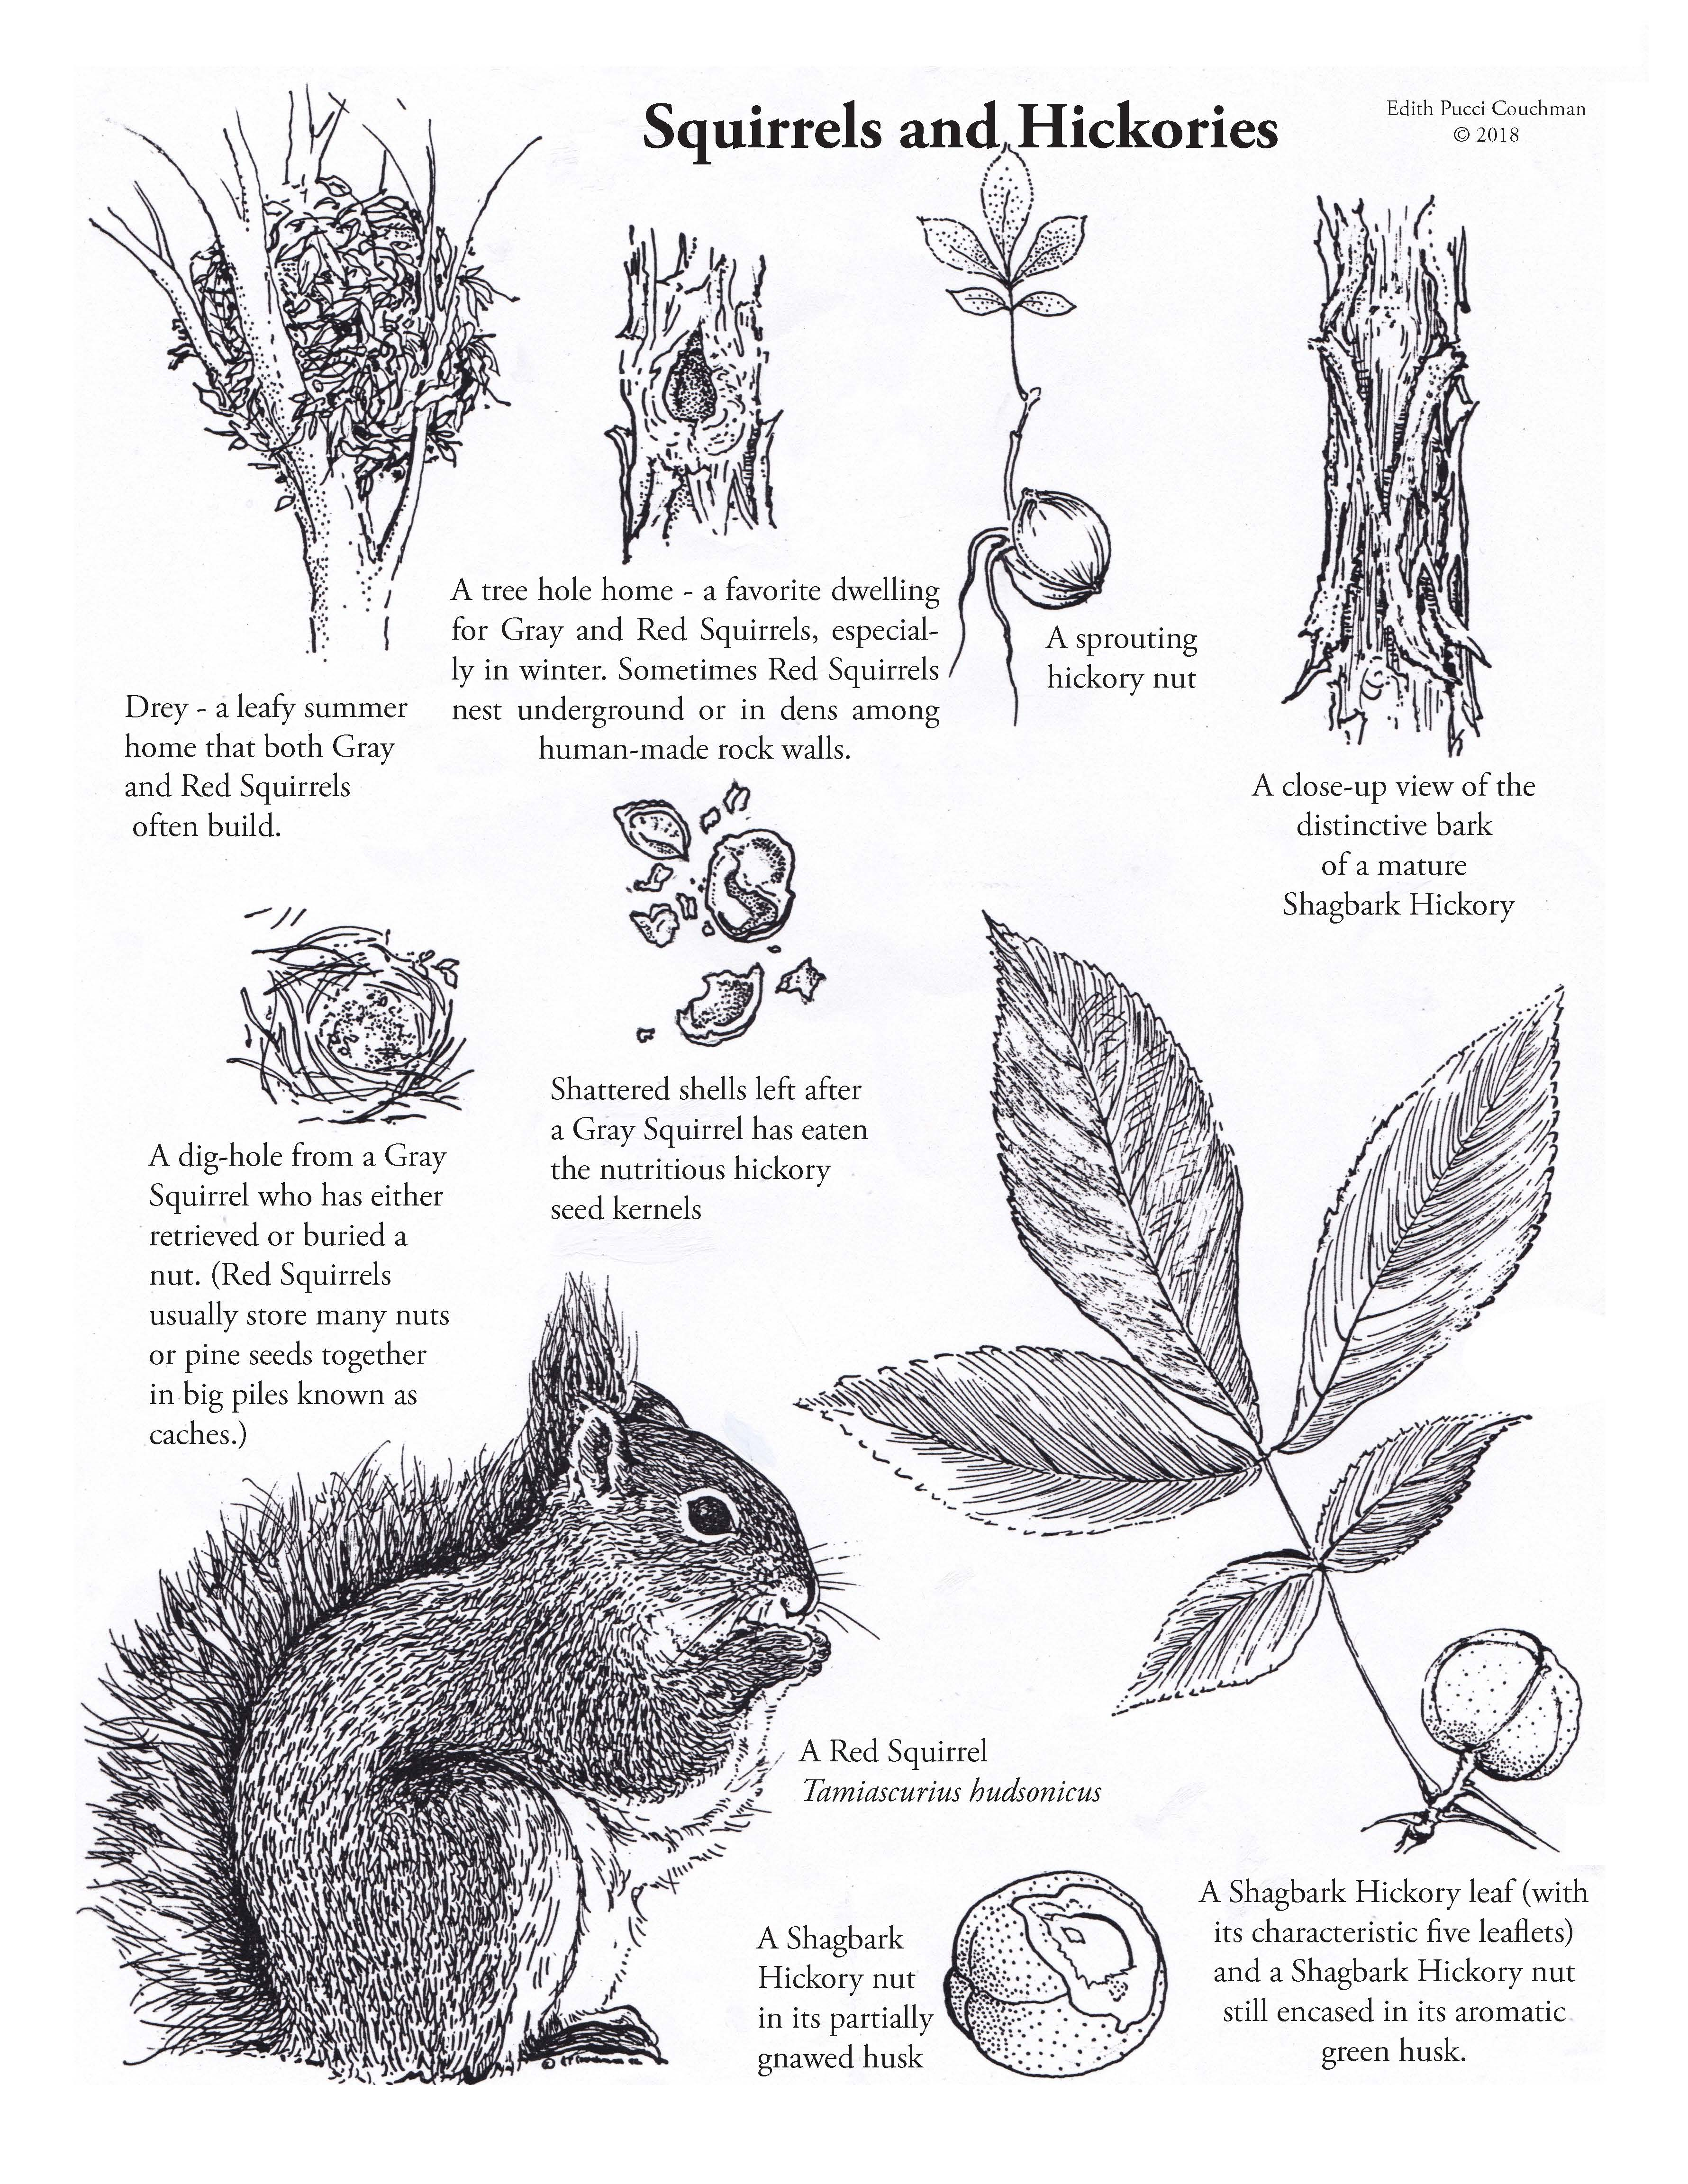 How To Draw A Squirrel In A Tree Hole